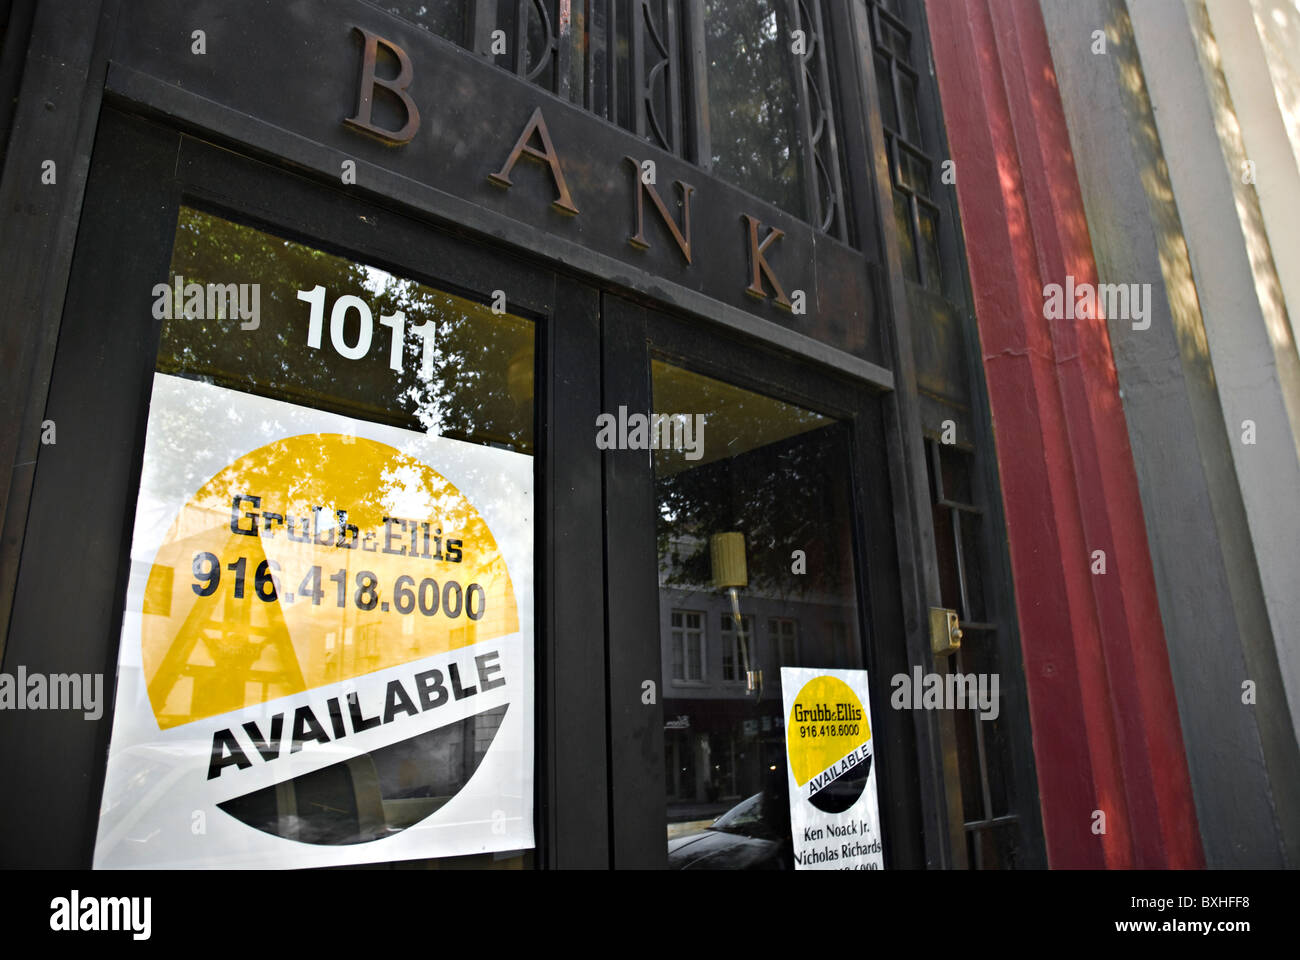 Grubb and Ellis for sale signs in a bank doorway Stock Photo